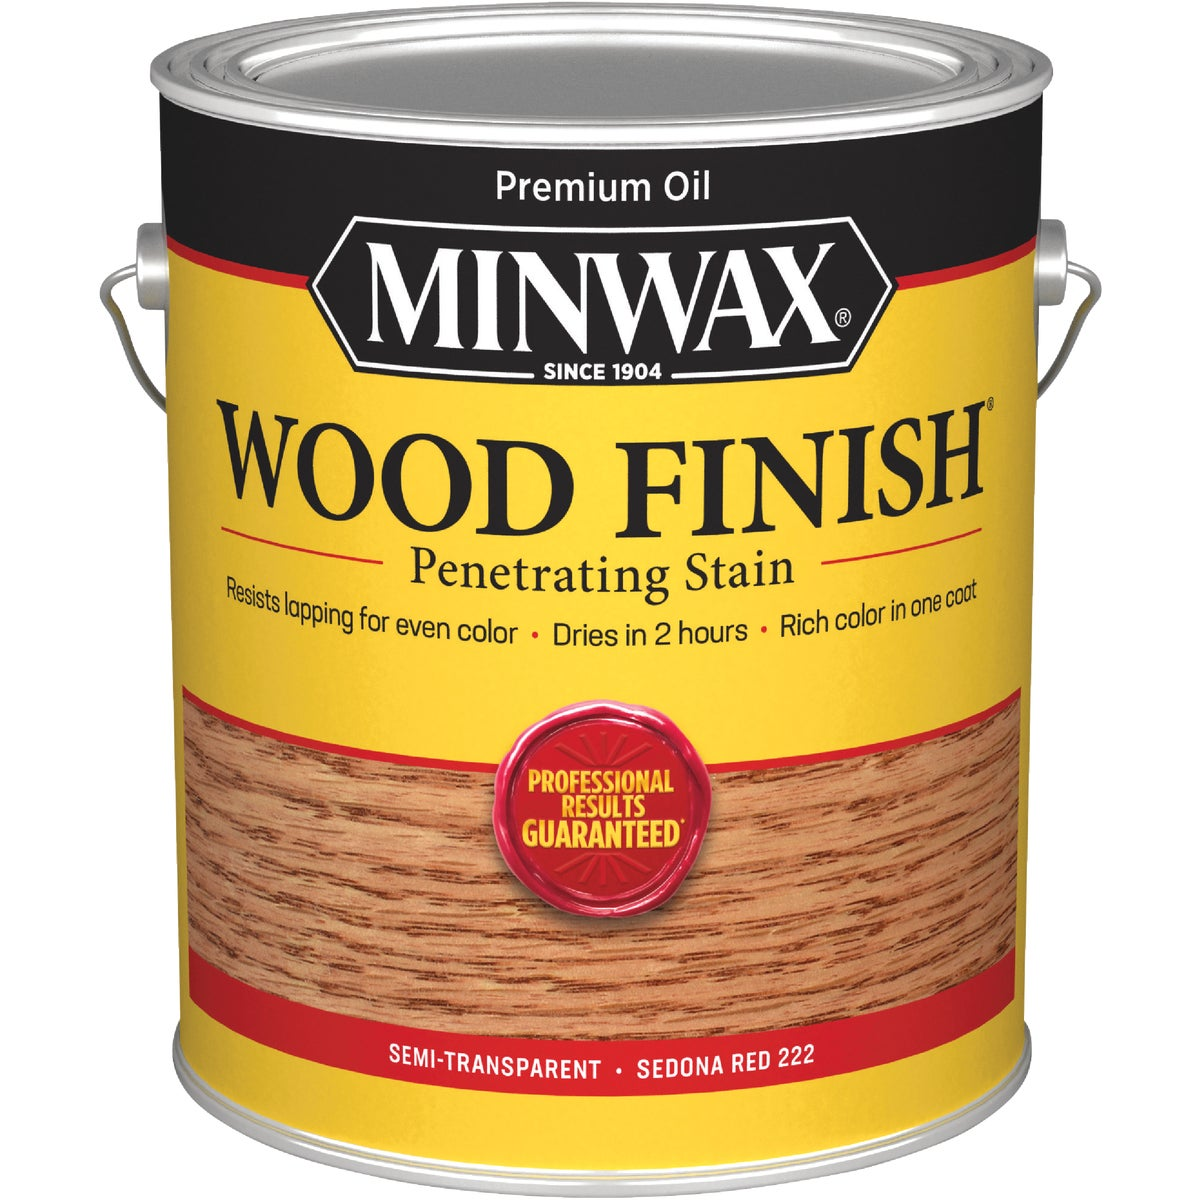 SEDONA RED WOOD STAIN - 71043 by Minwax Company